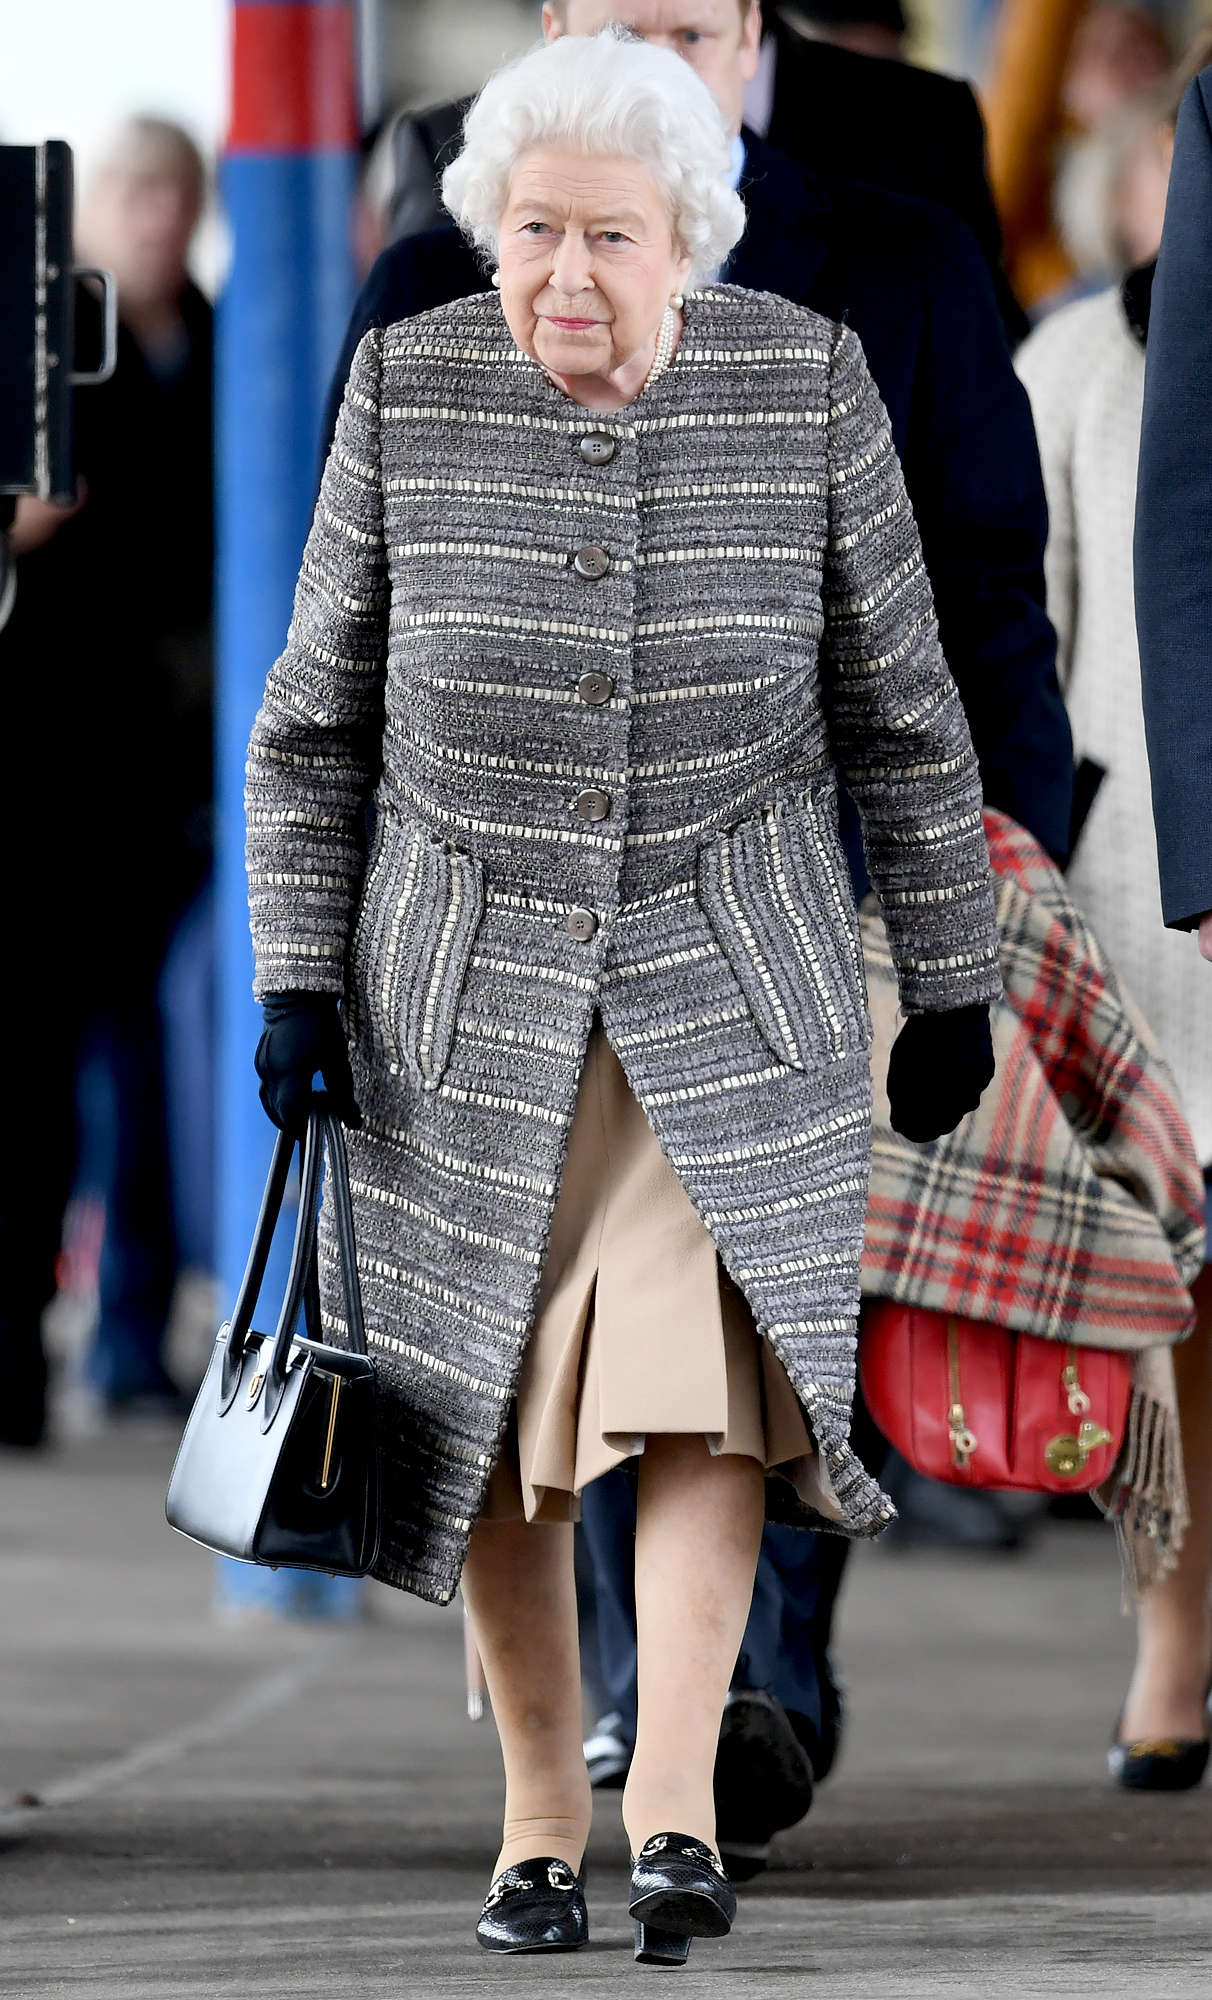 Queen-Elizabeth-Kings-Lynn-Railway-Station-5 - Queen Elizabeth II arrives at King's Lynn railway station in Norfolk to board a train to return to London, after spending the Christmas period at Sandringham House in north Norfolk. (Photo by Joe Giddens/PA Images via Getty Images)